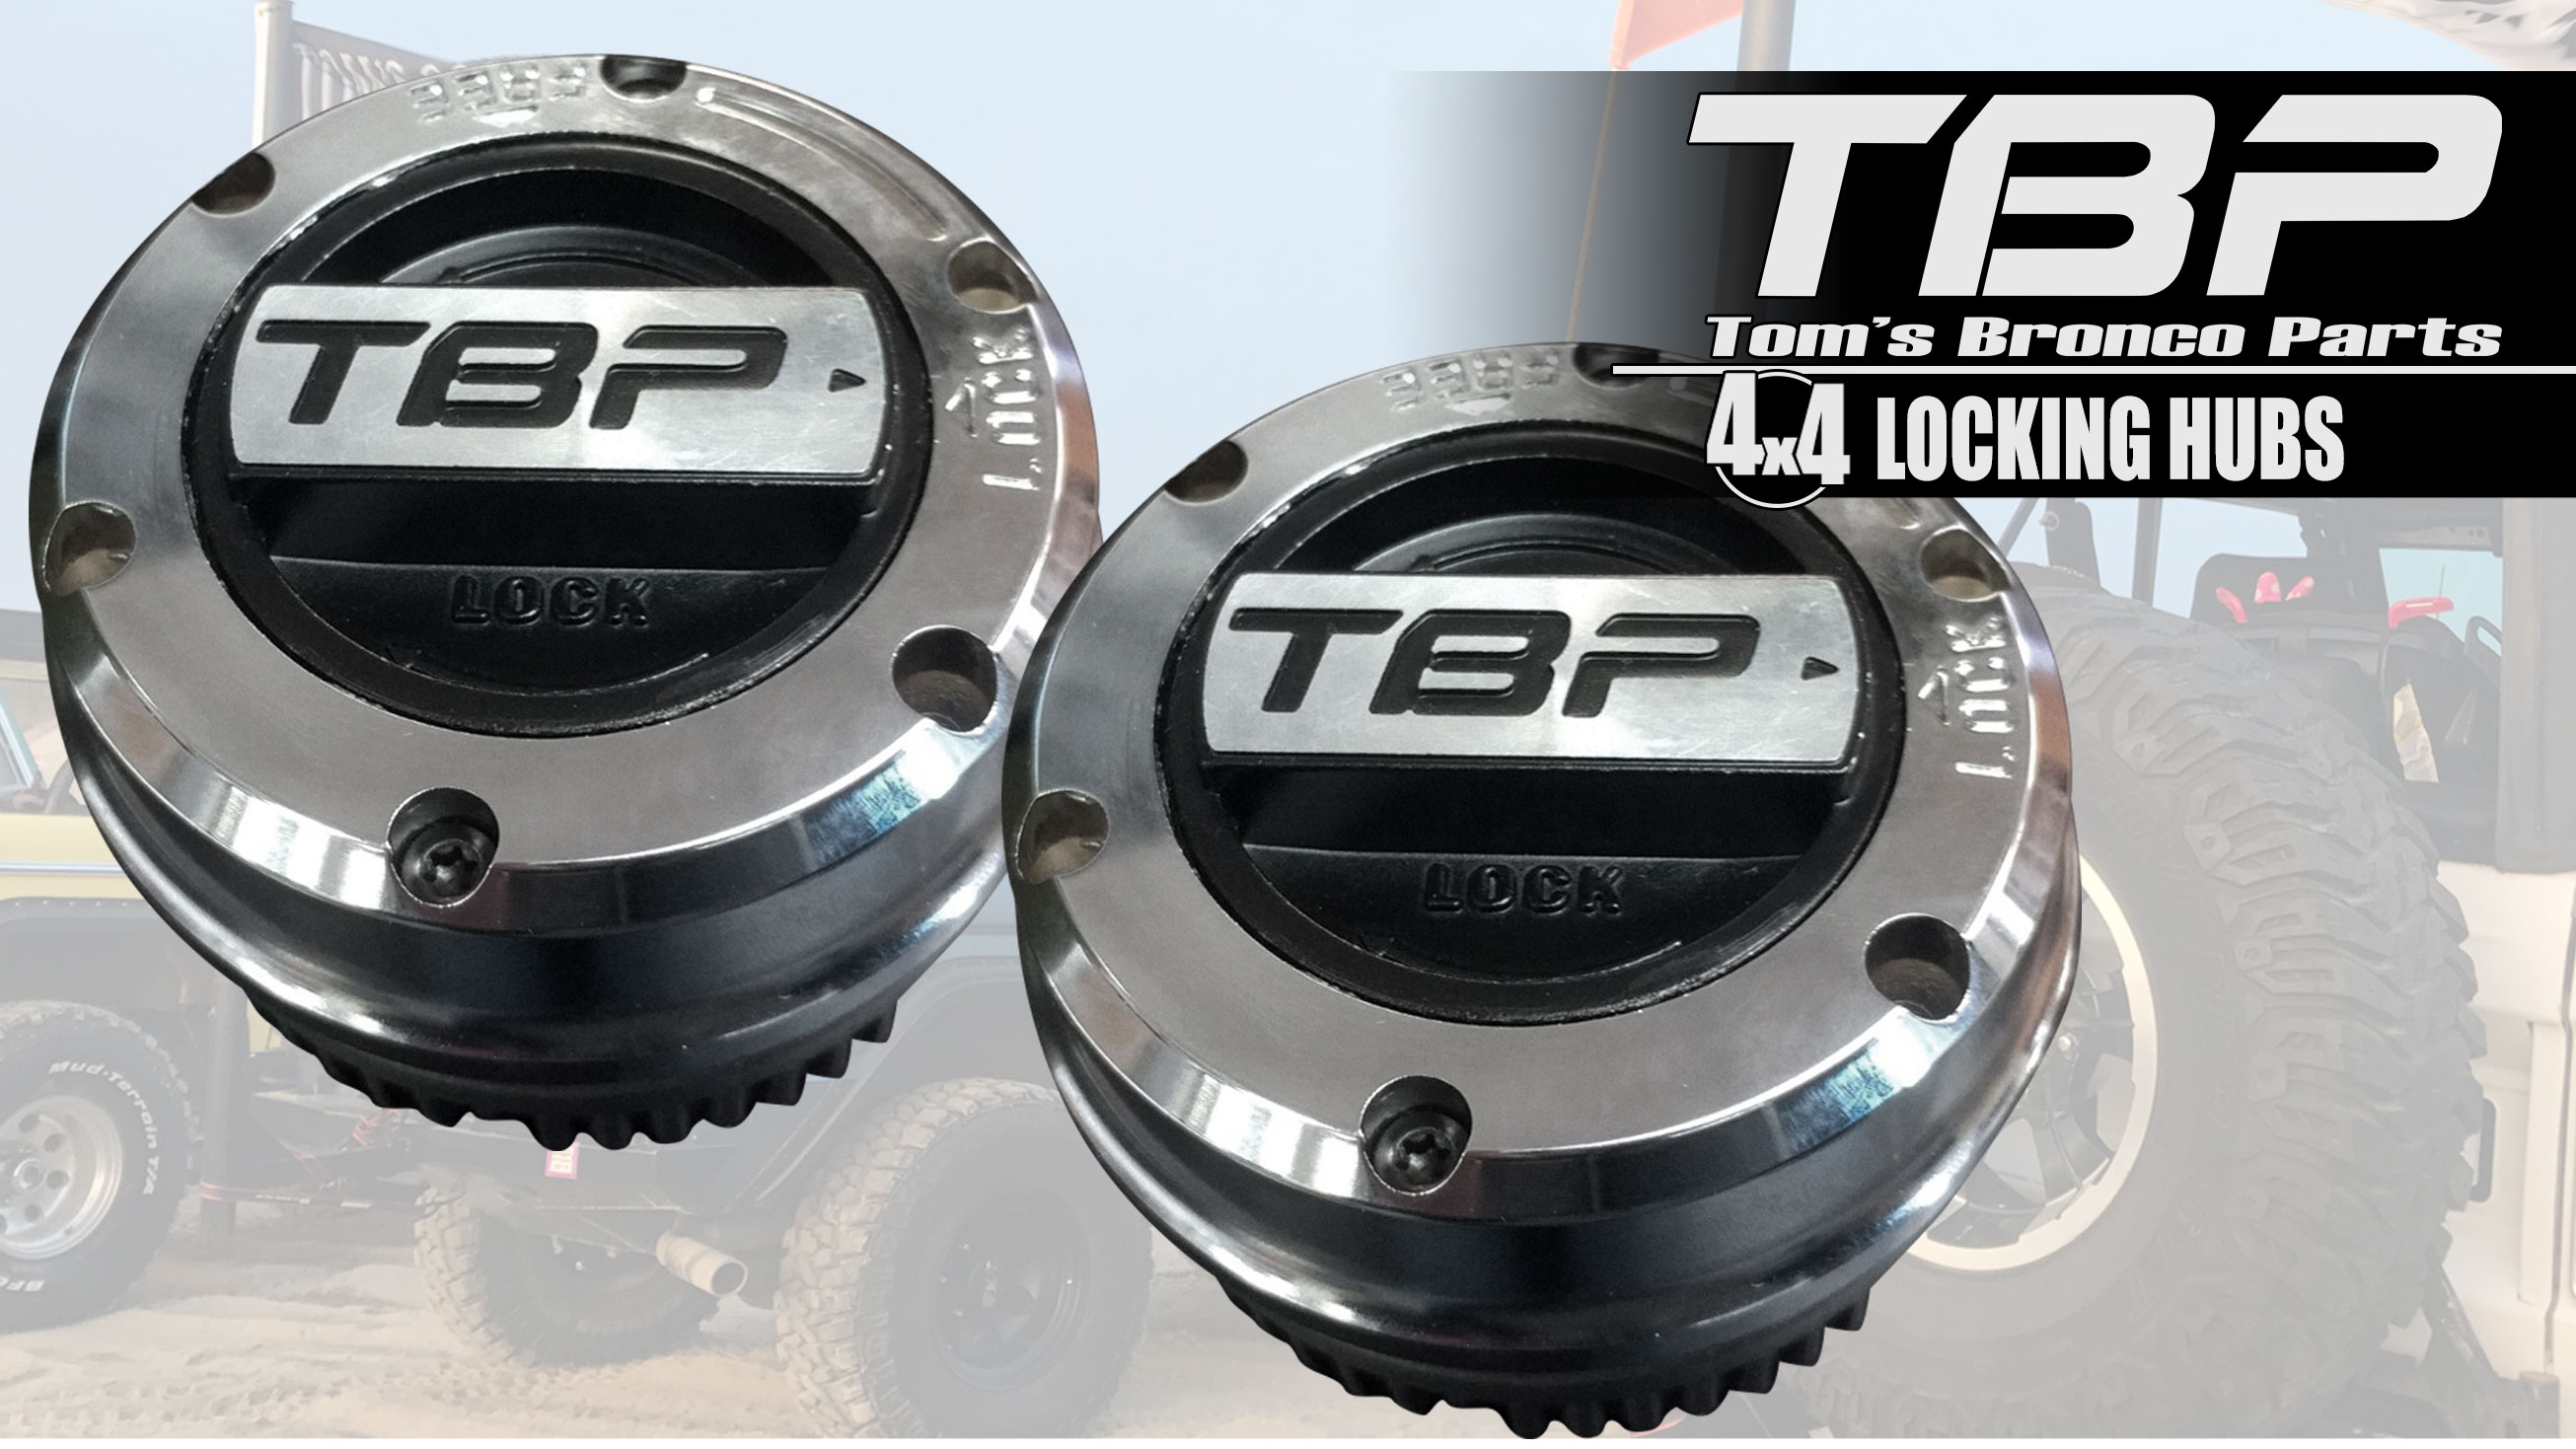 TBP Locking Hubs - Premium Chrome, 66-79 Ford Bronco (pair)